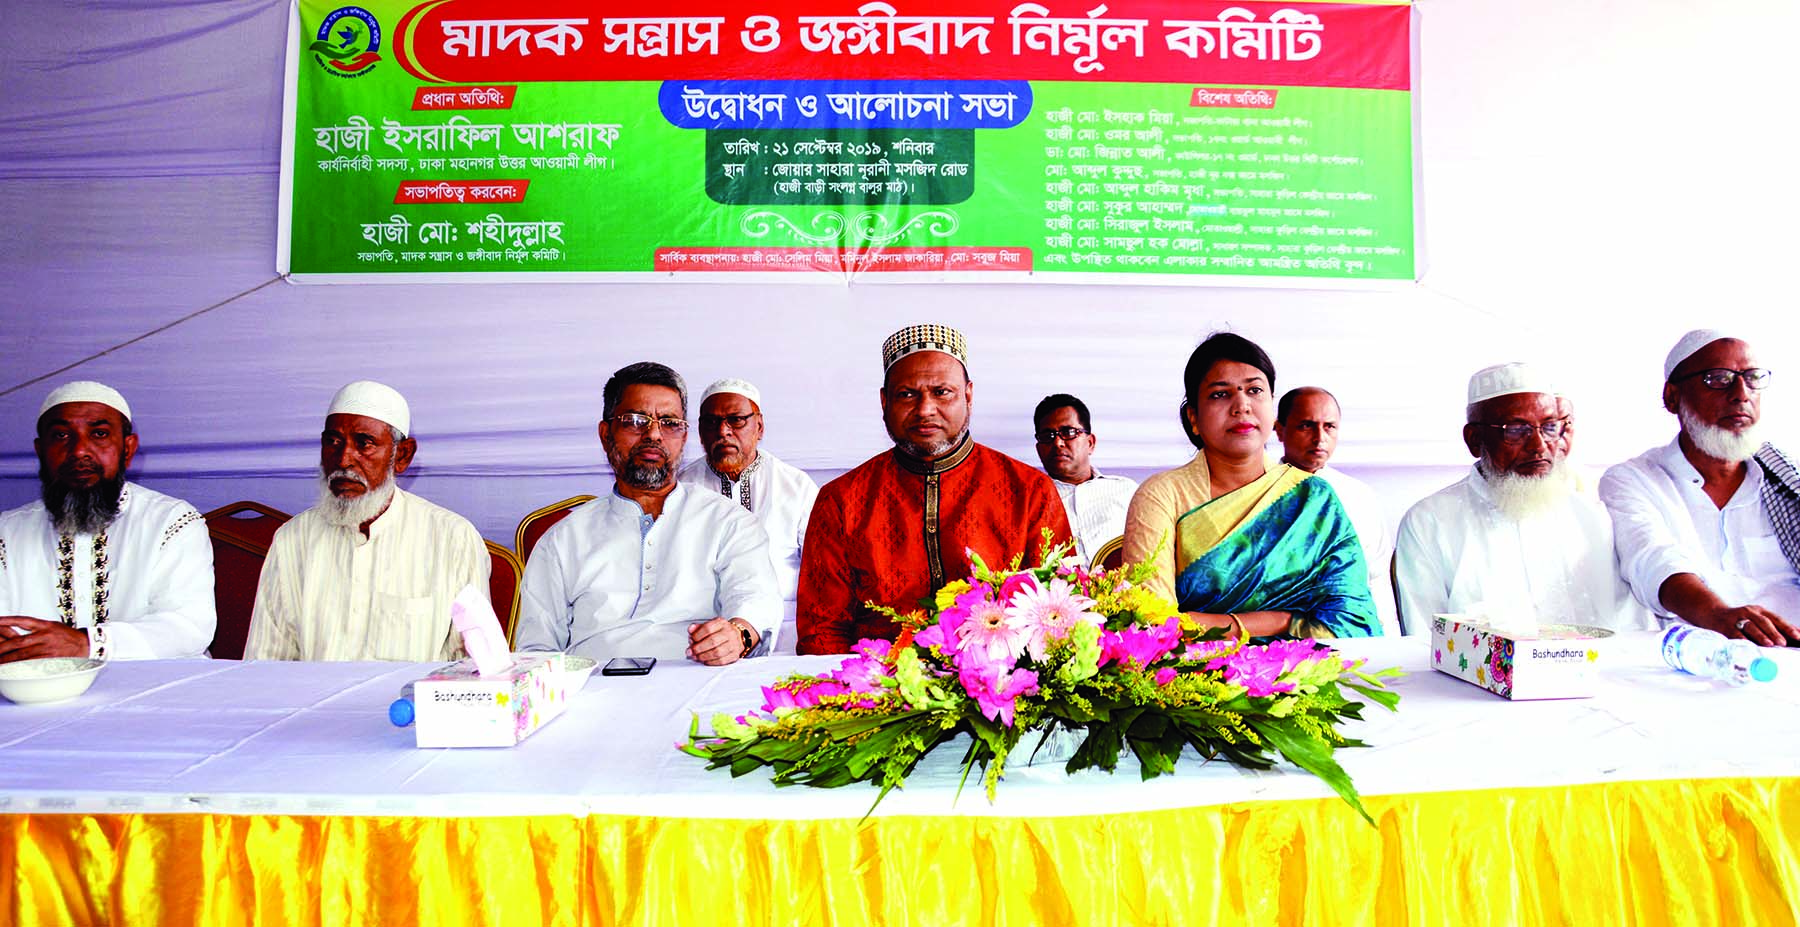 Awami League leader Hazi Israfil Ashraf, among others, at the inauguration of the committee for eliminating extremism and terrorism at Joar Sahara Nurani Mashjid Road under Batara thana in the city on Saturday.